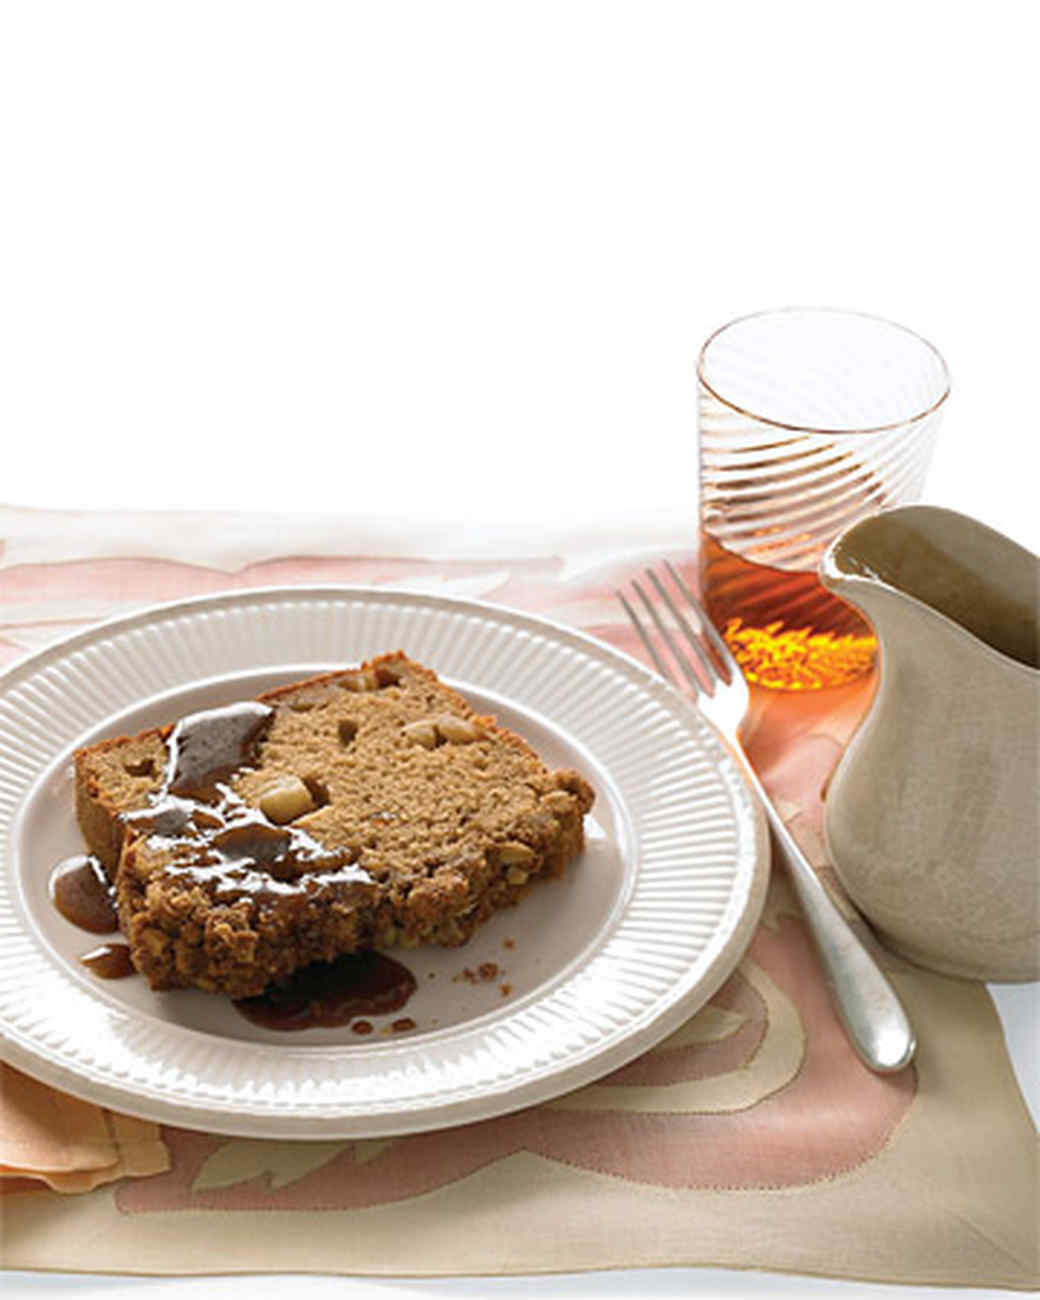 Apple Spice Cake With Caramel Sauce Recipe